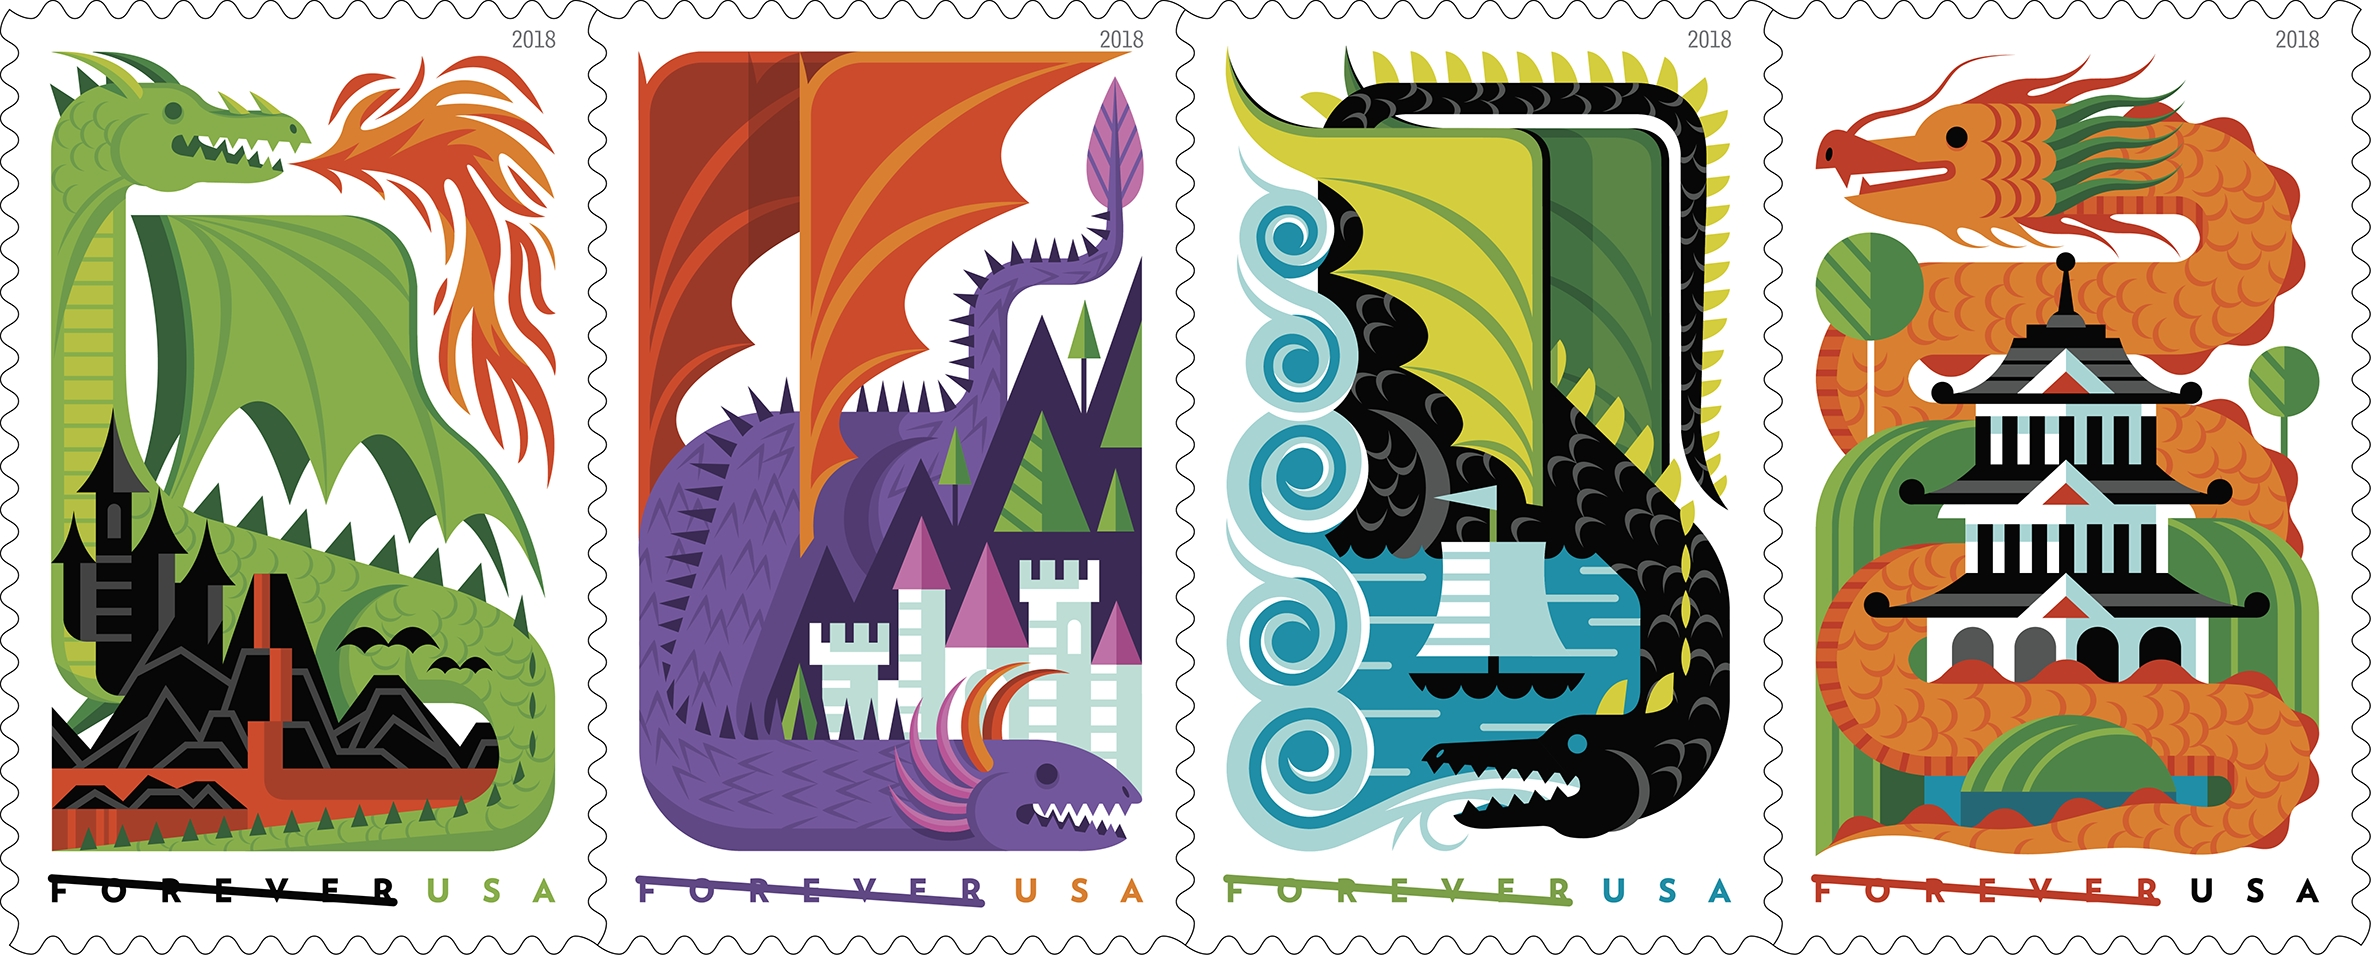 Dragons: The Postal Service celebrates dragons, the high-flying, fire-breathing mythological creatures that have roamed our imaginations for millennia. (USPS)